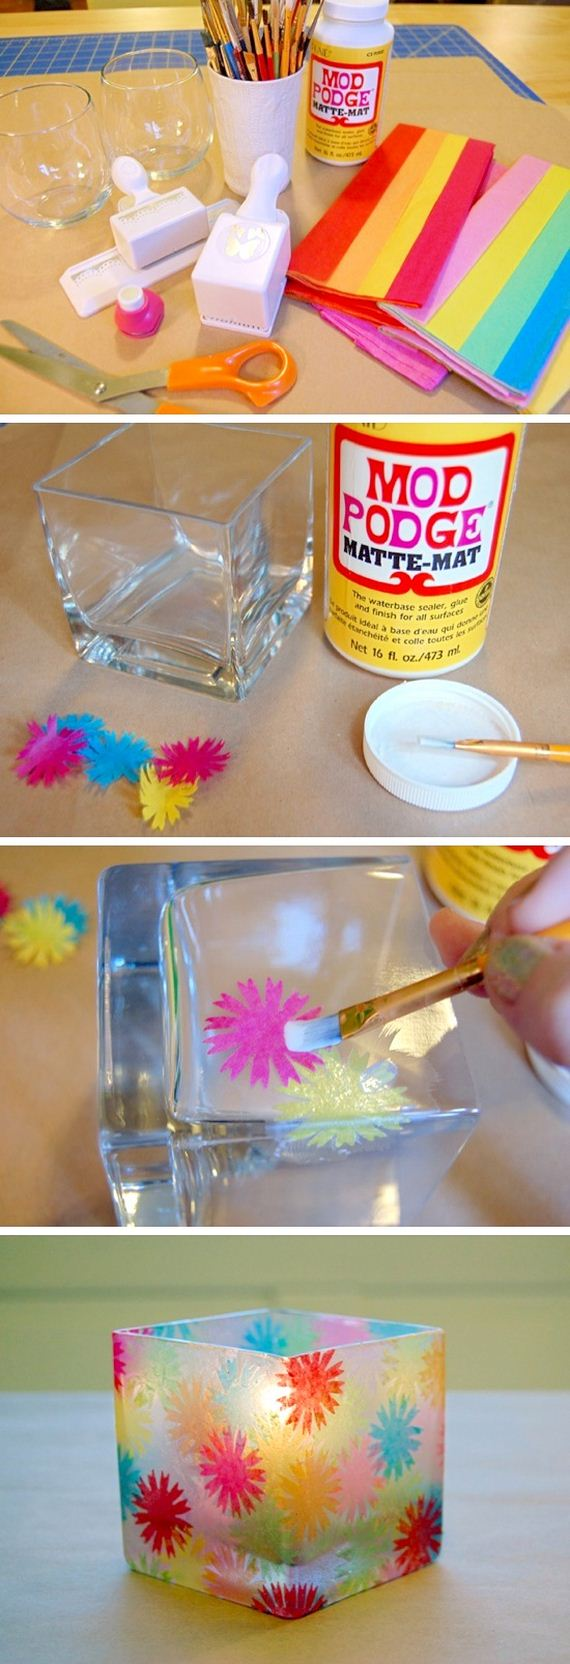 03-instant-and-fun-easy-diy-craft-projects-to-do-at-home